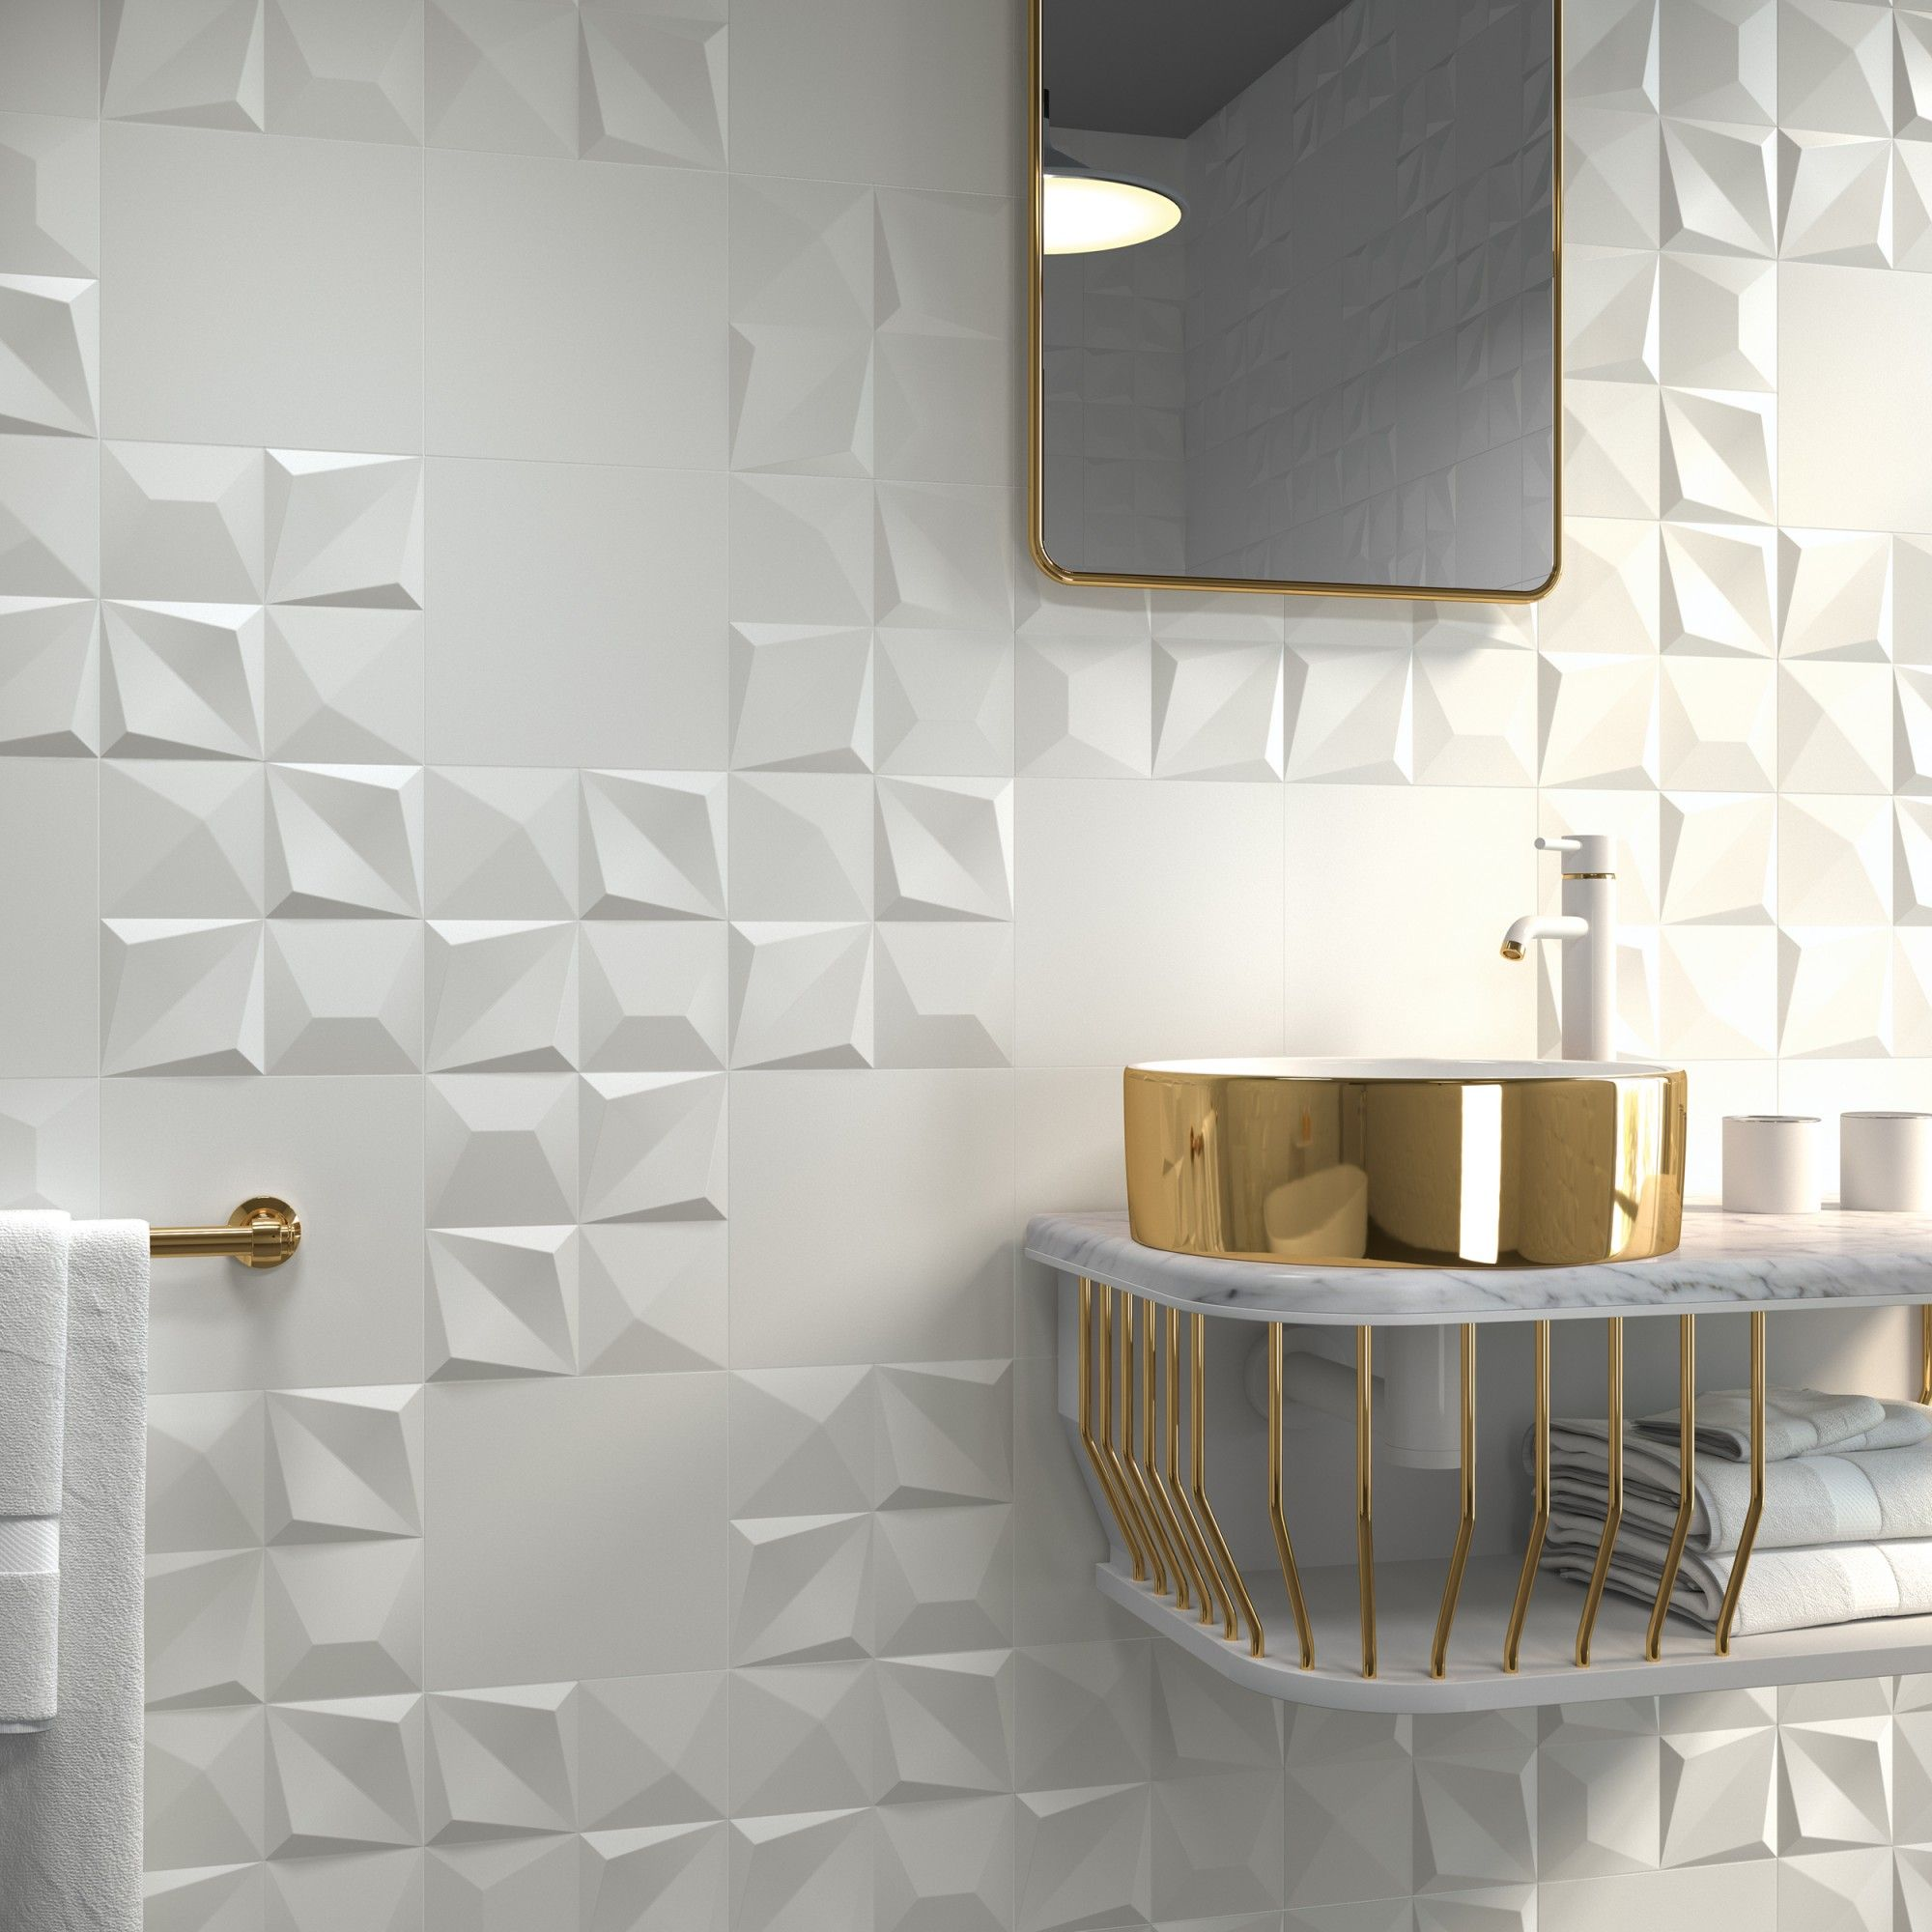 Badgestaltung ohne wanne  lavabo white and gold  bad in   pinterest  baños